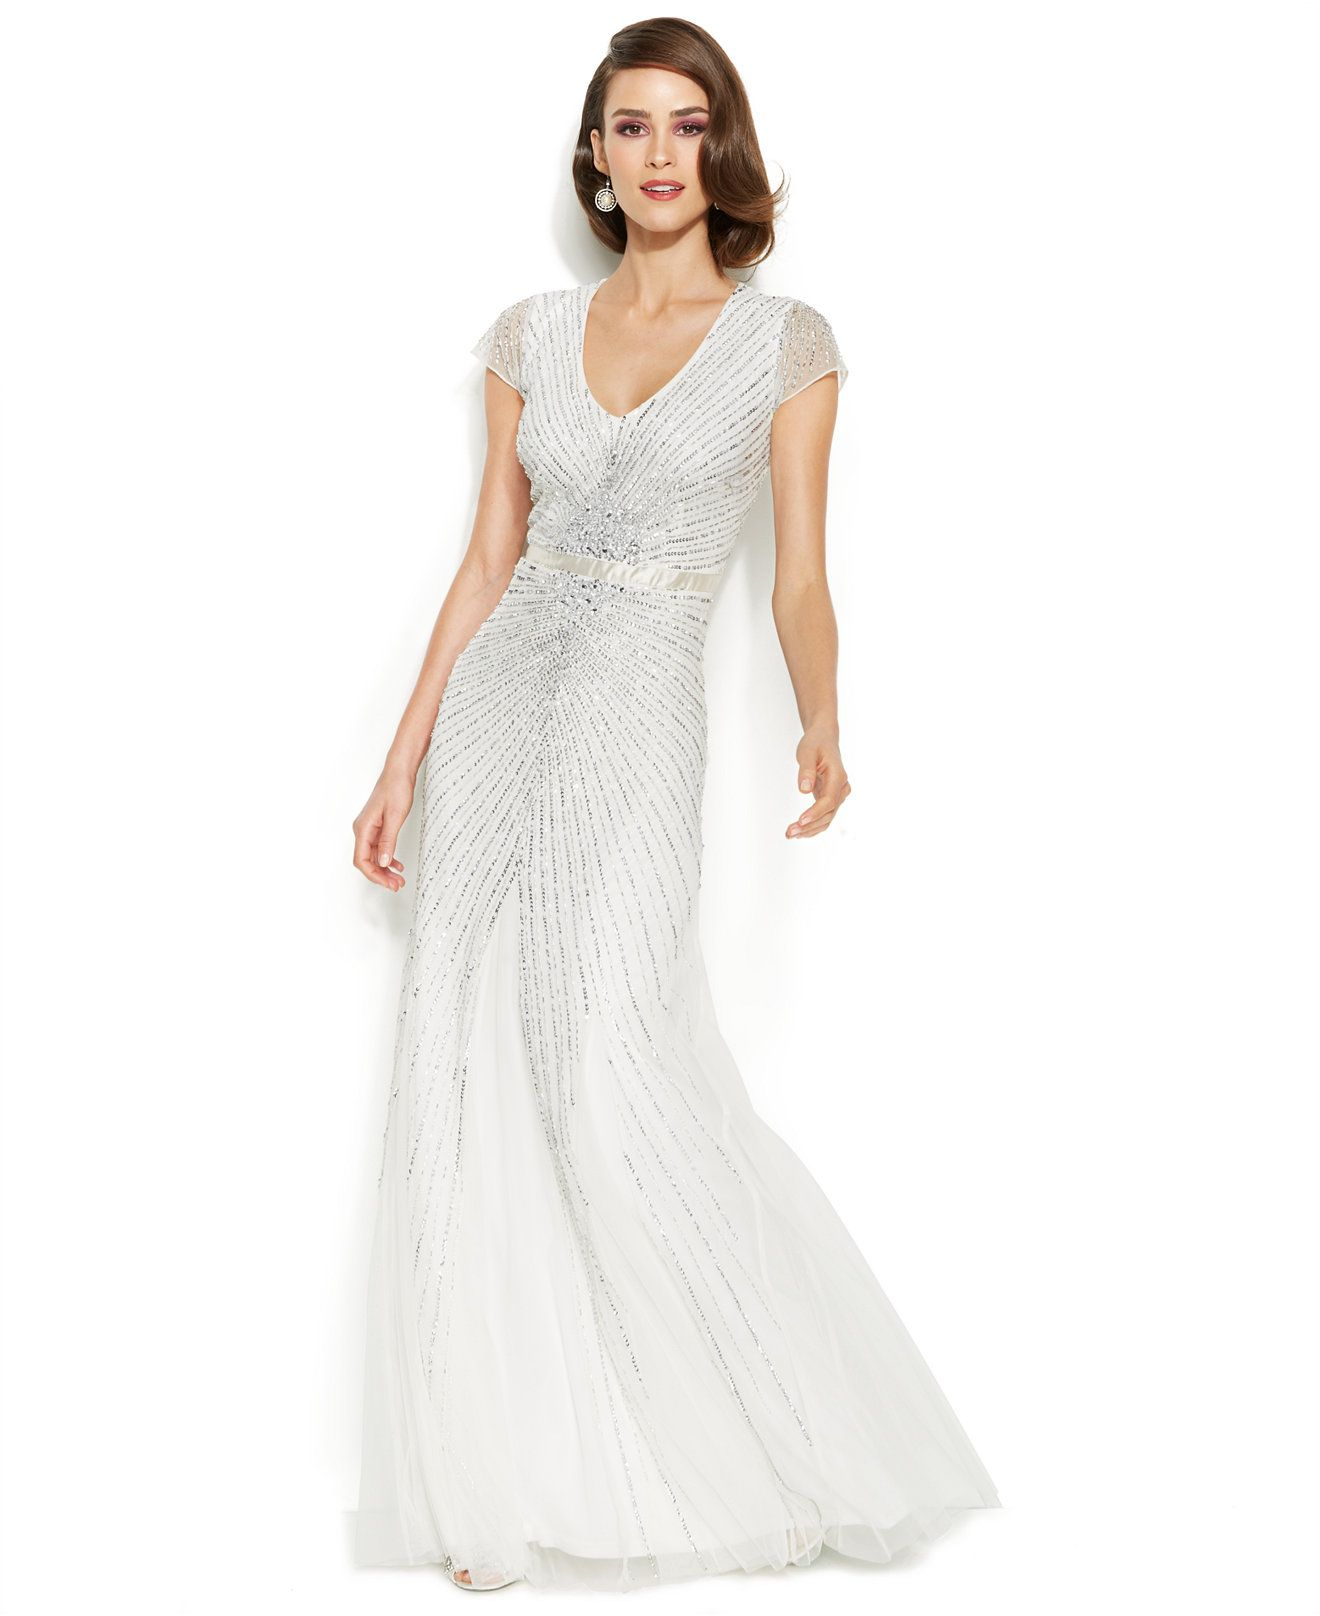 Adrianna Papell Wedding Gowns: Adrianna Papell Cap-Sleeve Embellished Sunburst Gown